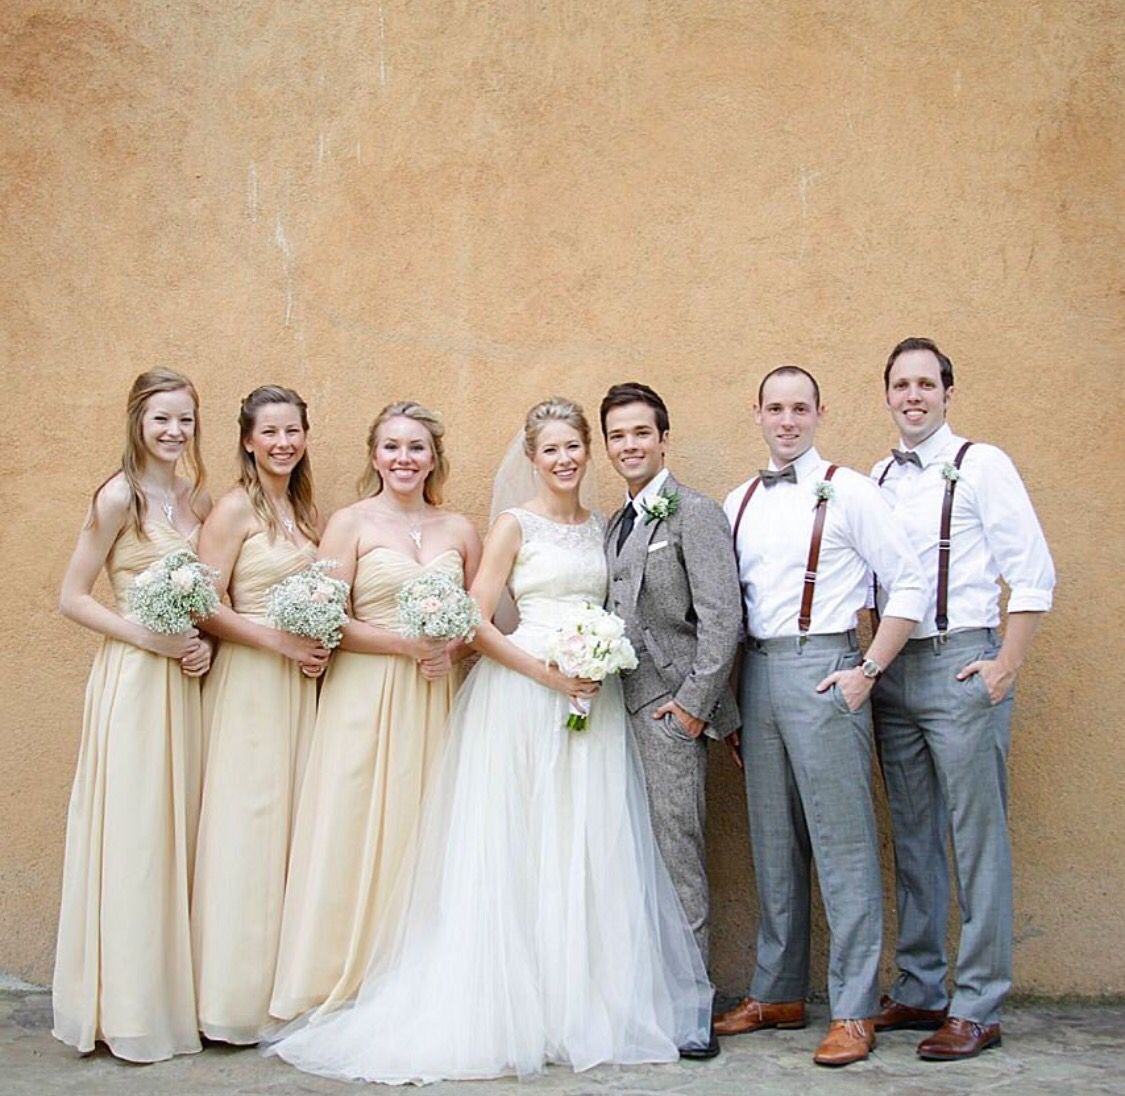 Nathan Kress Wedding.Nathan Kress Wedding With Bride And Groom Siblings Nathan